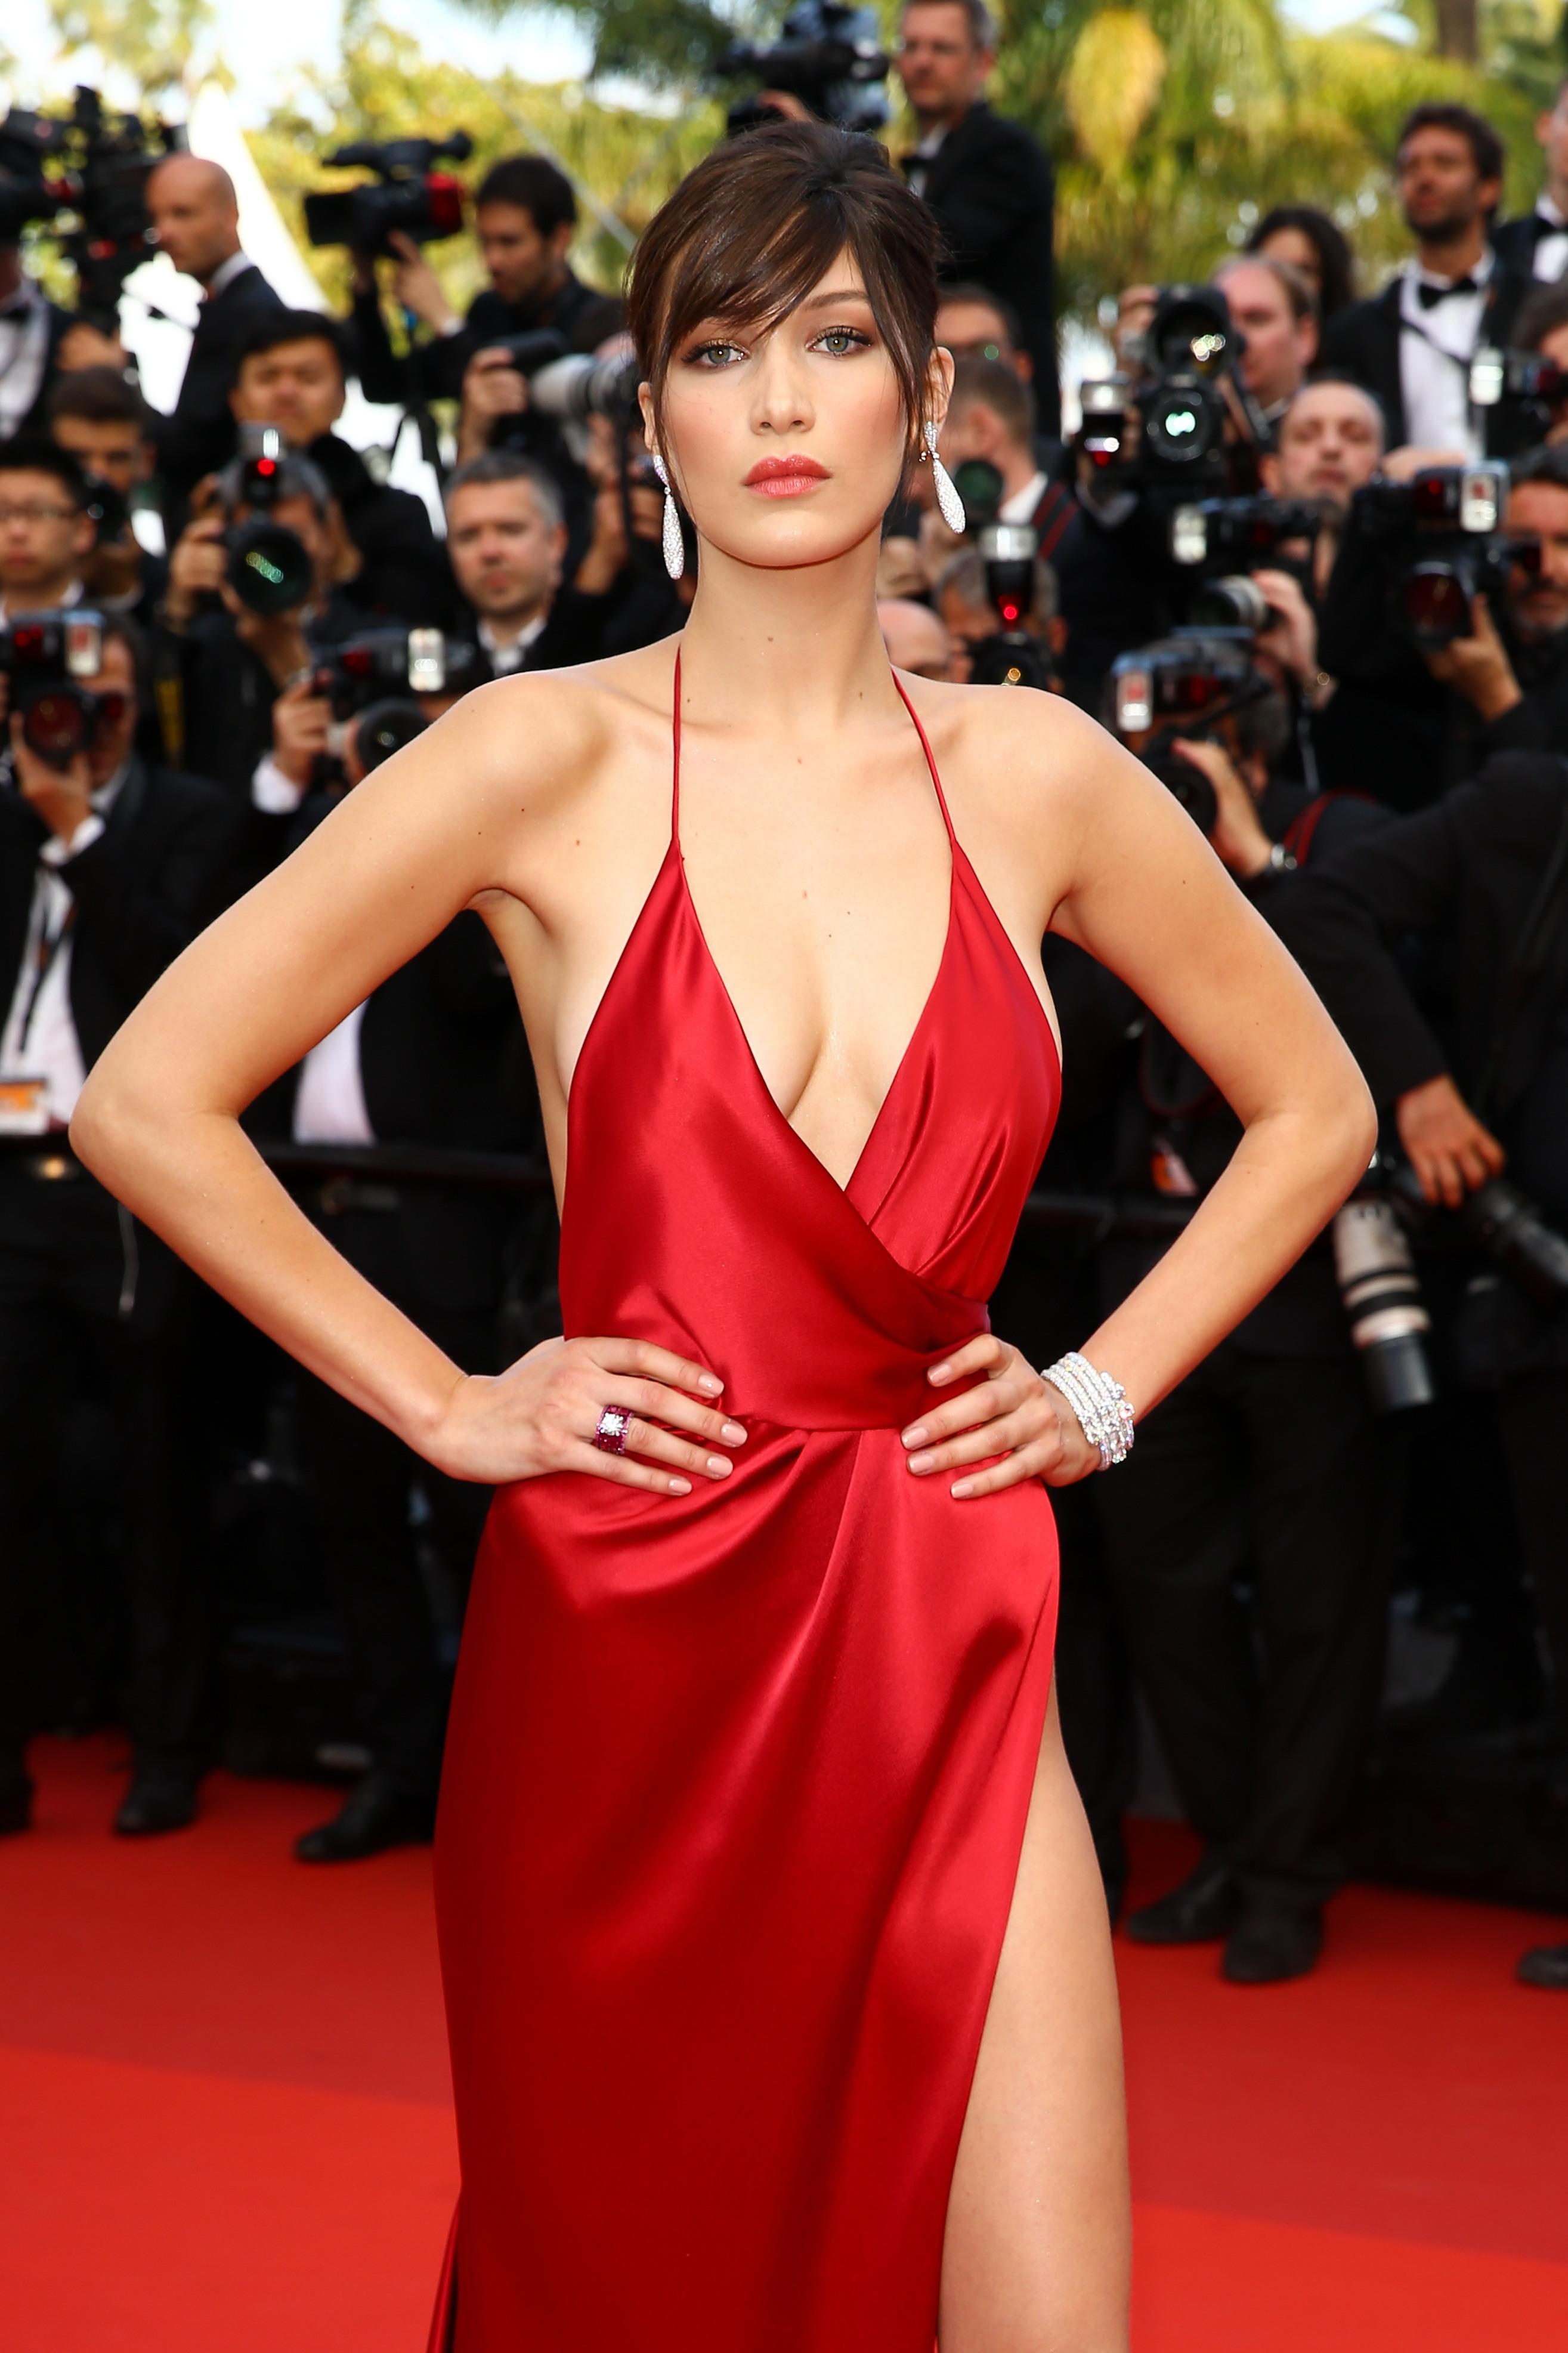 bella-hadid-at-the-unknown-girl-premiere-during-cannes-film-festival-in-cannes-547522